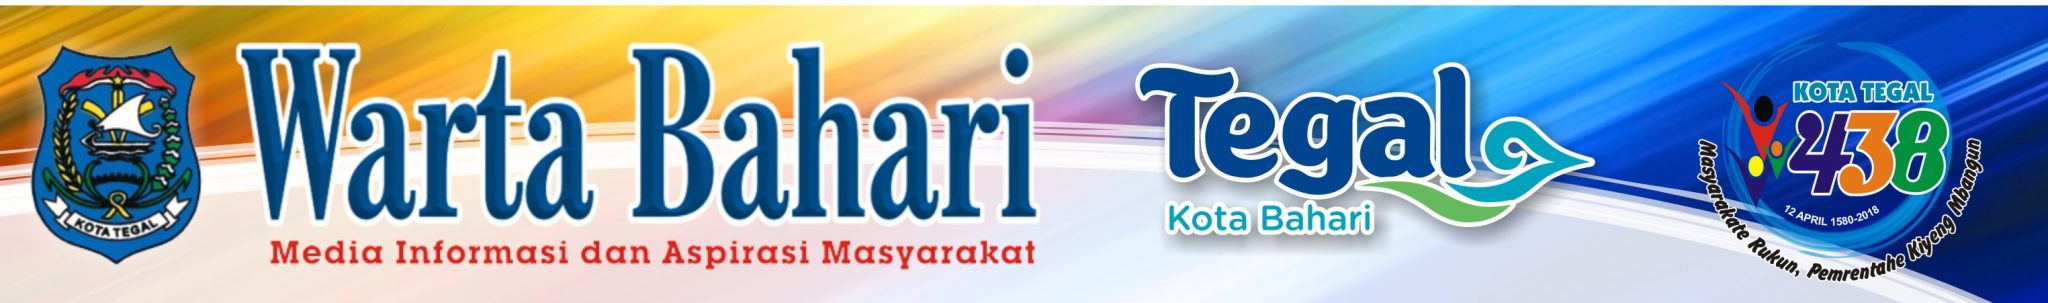 Wasrik It Koarmatim di Lanal Tegal Tahun 2018.